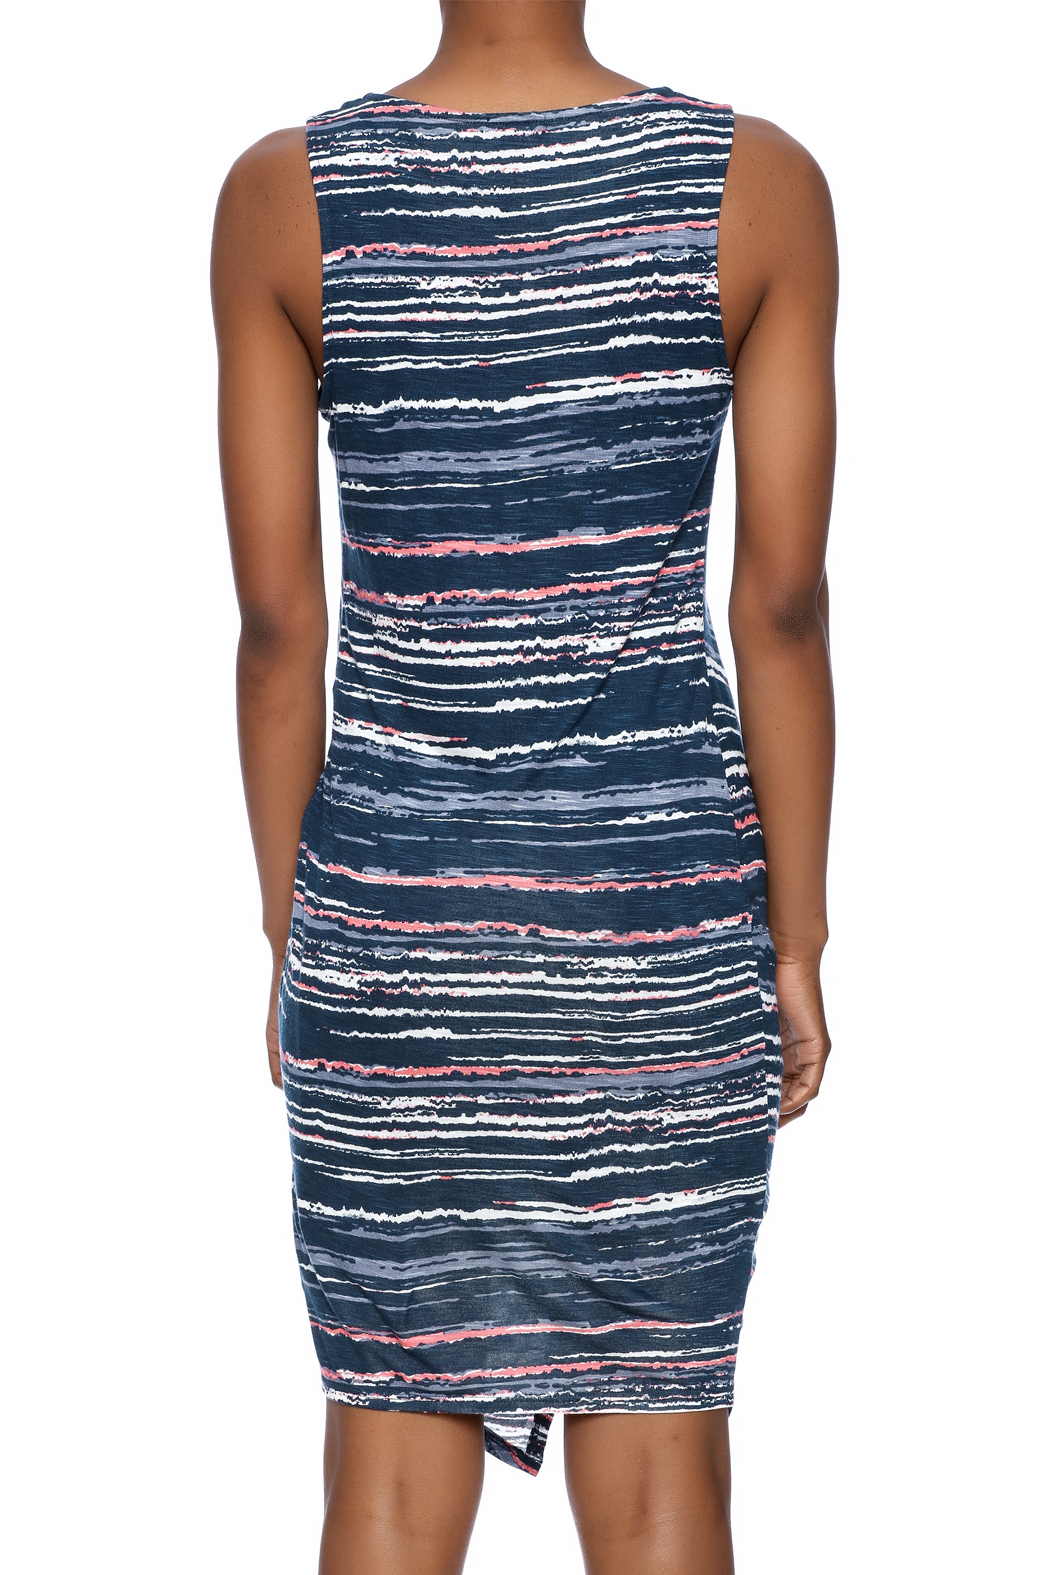 Splendid Knotted Bodycon Dress - Back Cropped Image